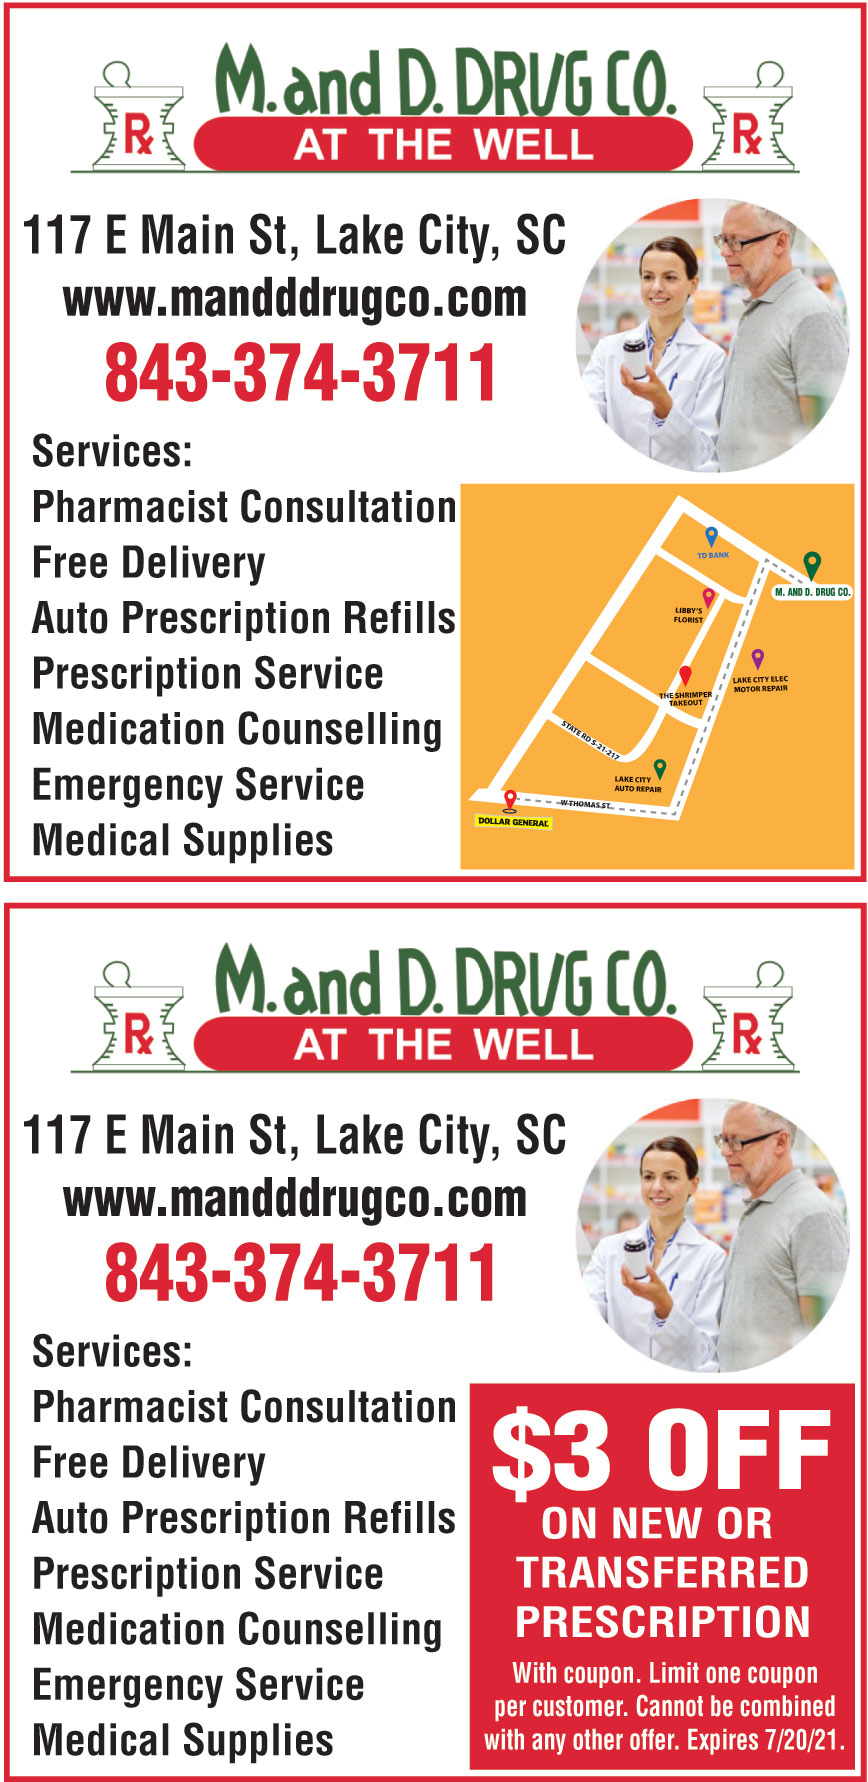 M AND D DRUG CO